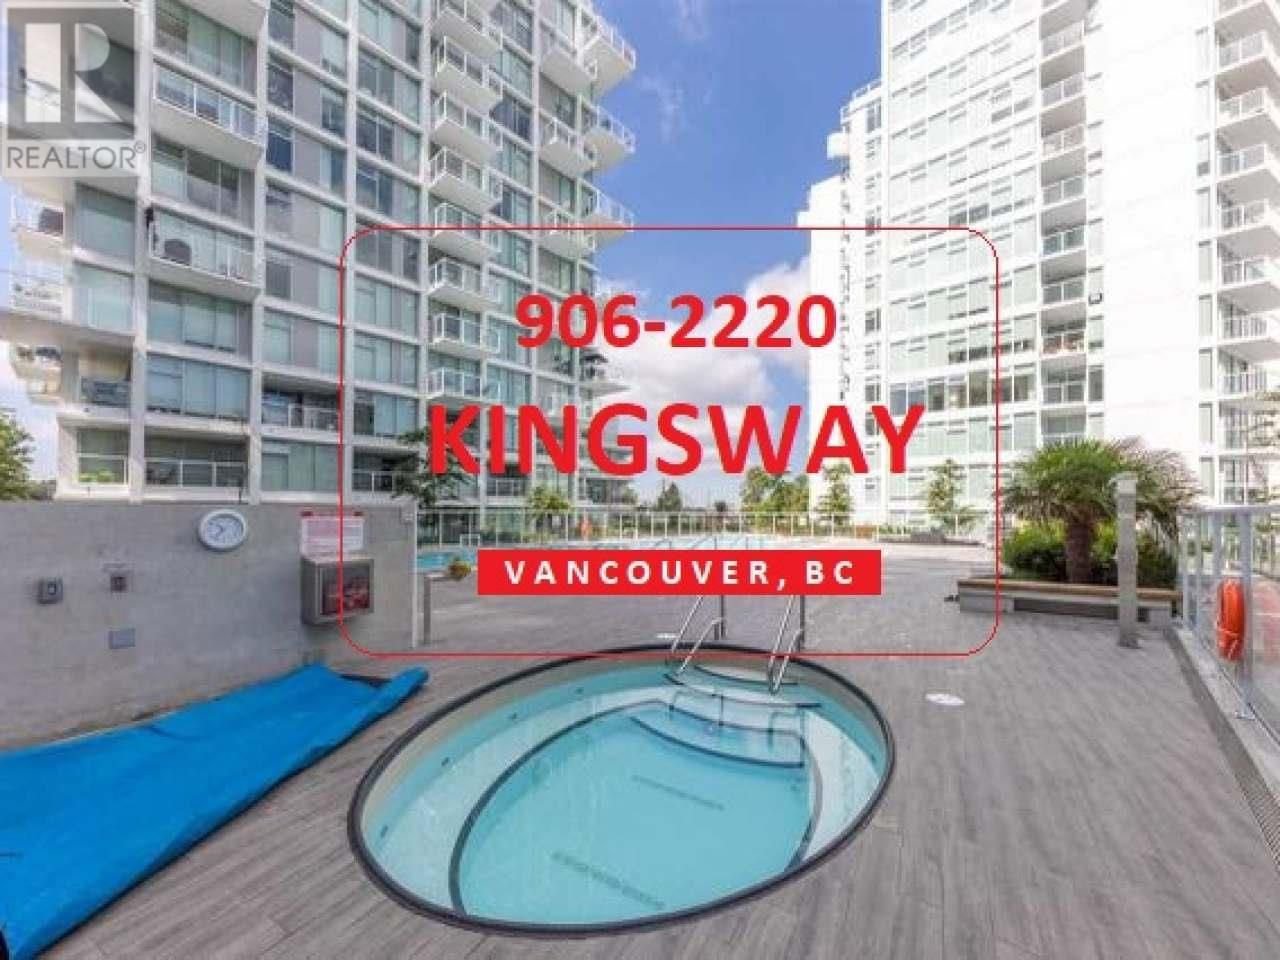 Main Photo: 906-2220 KINGSWAY in Out of Board Area: House for sale : MLS®# 15551